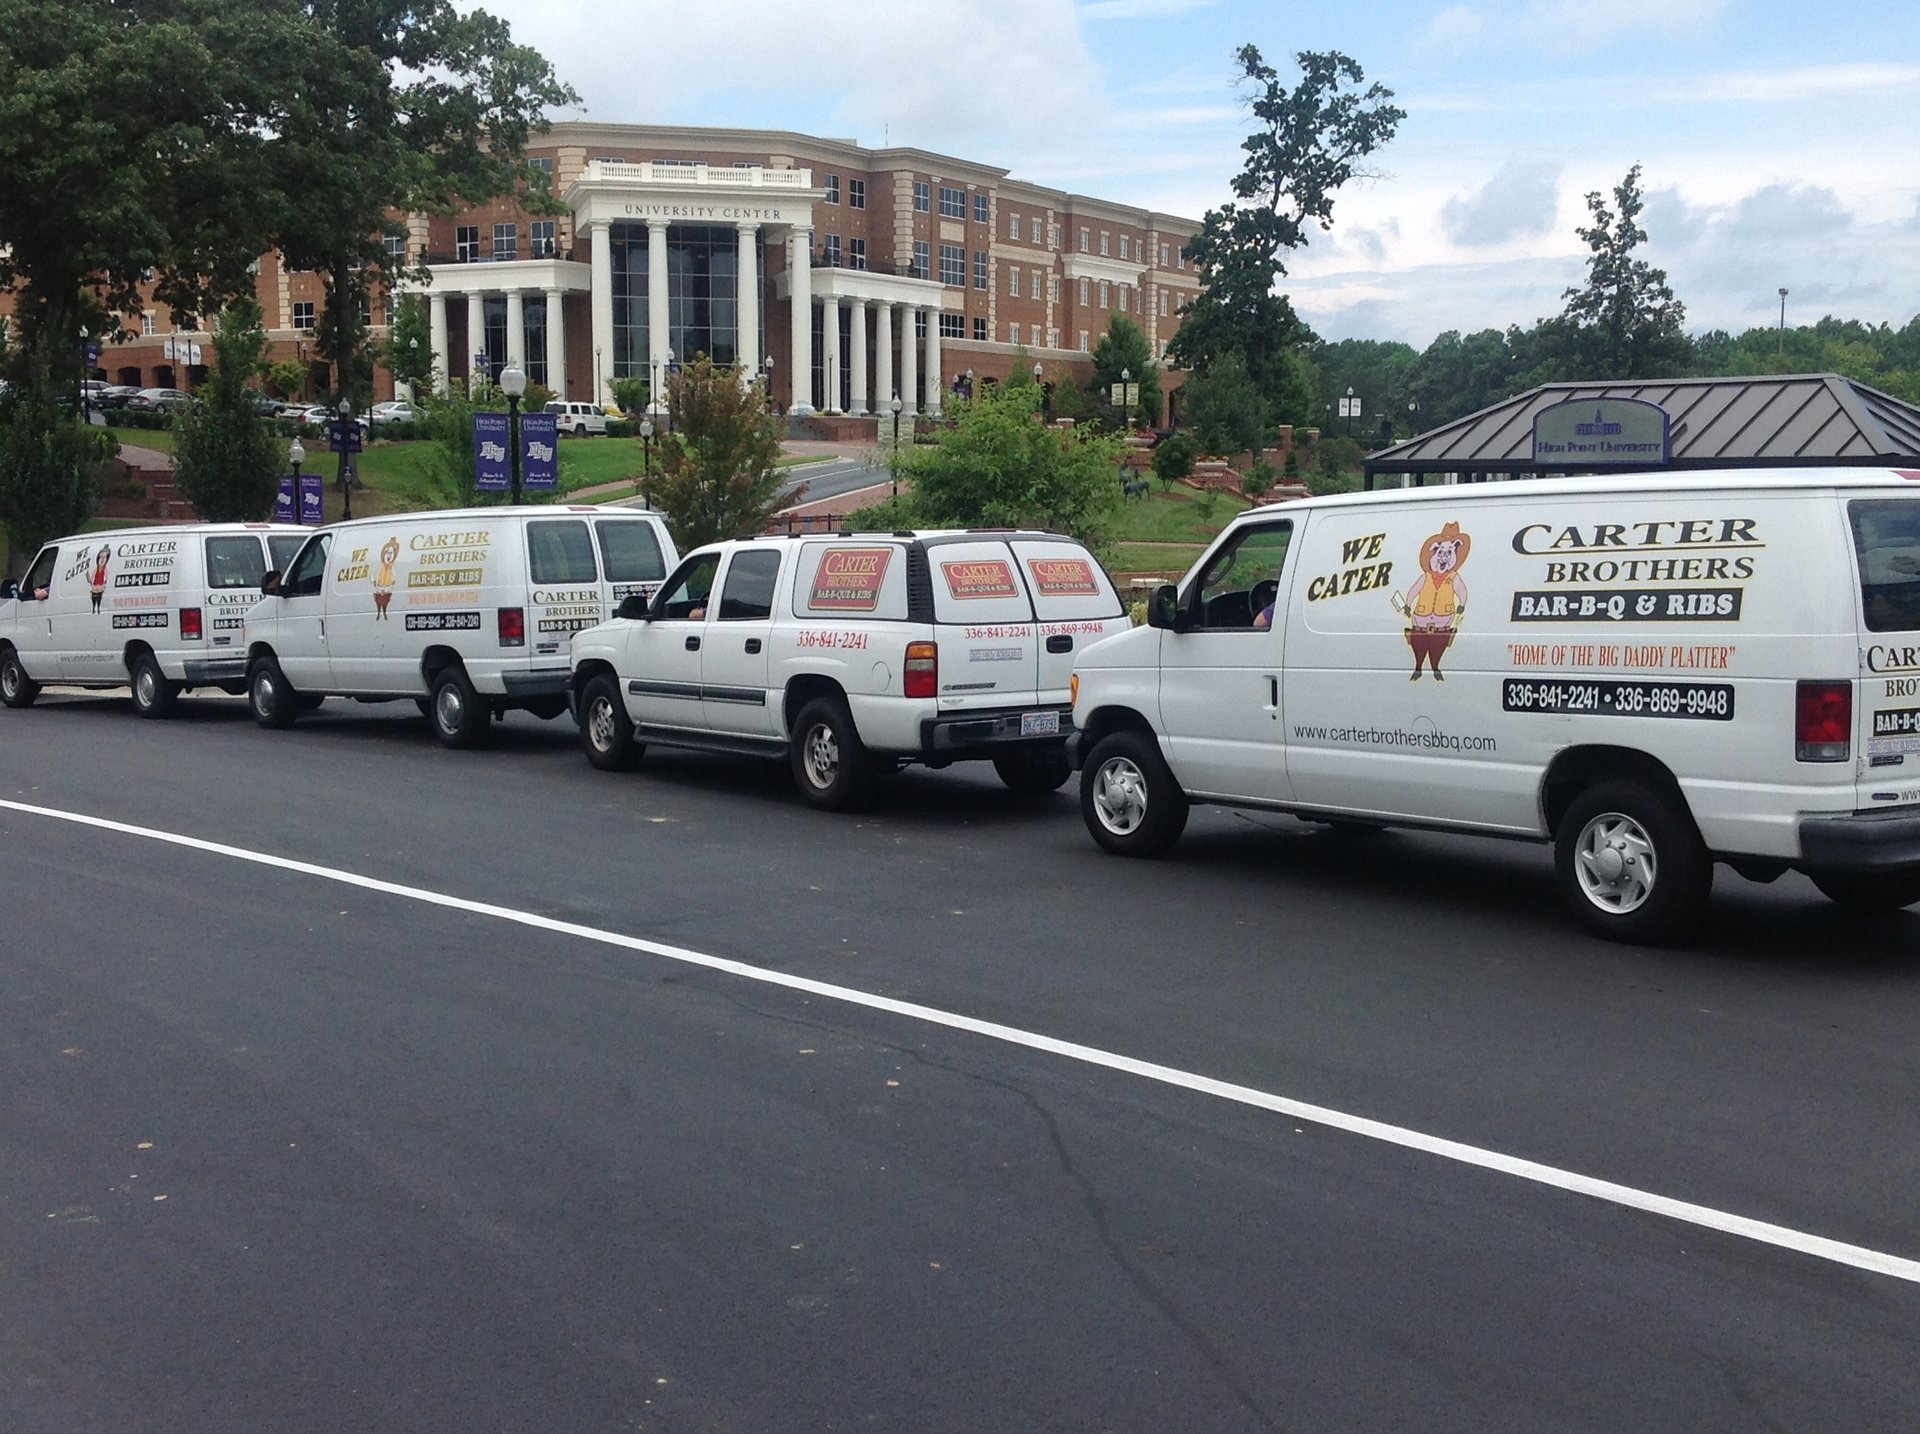 Carter brothers van are parked in High Point, NC